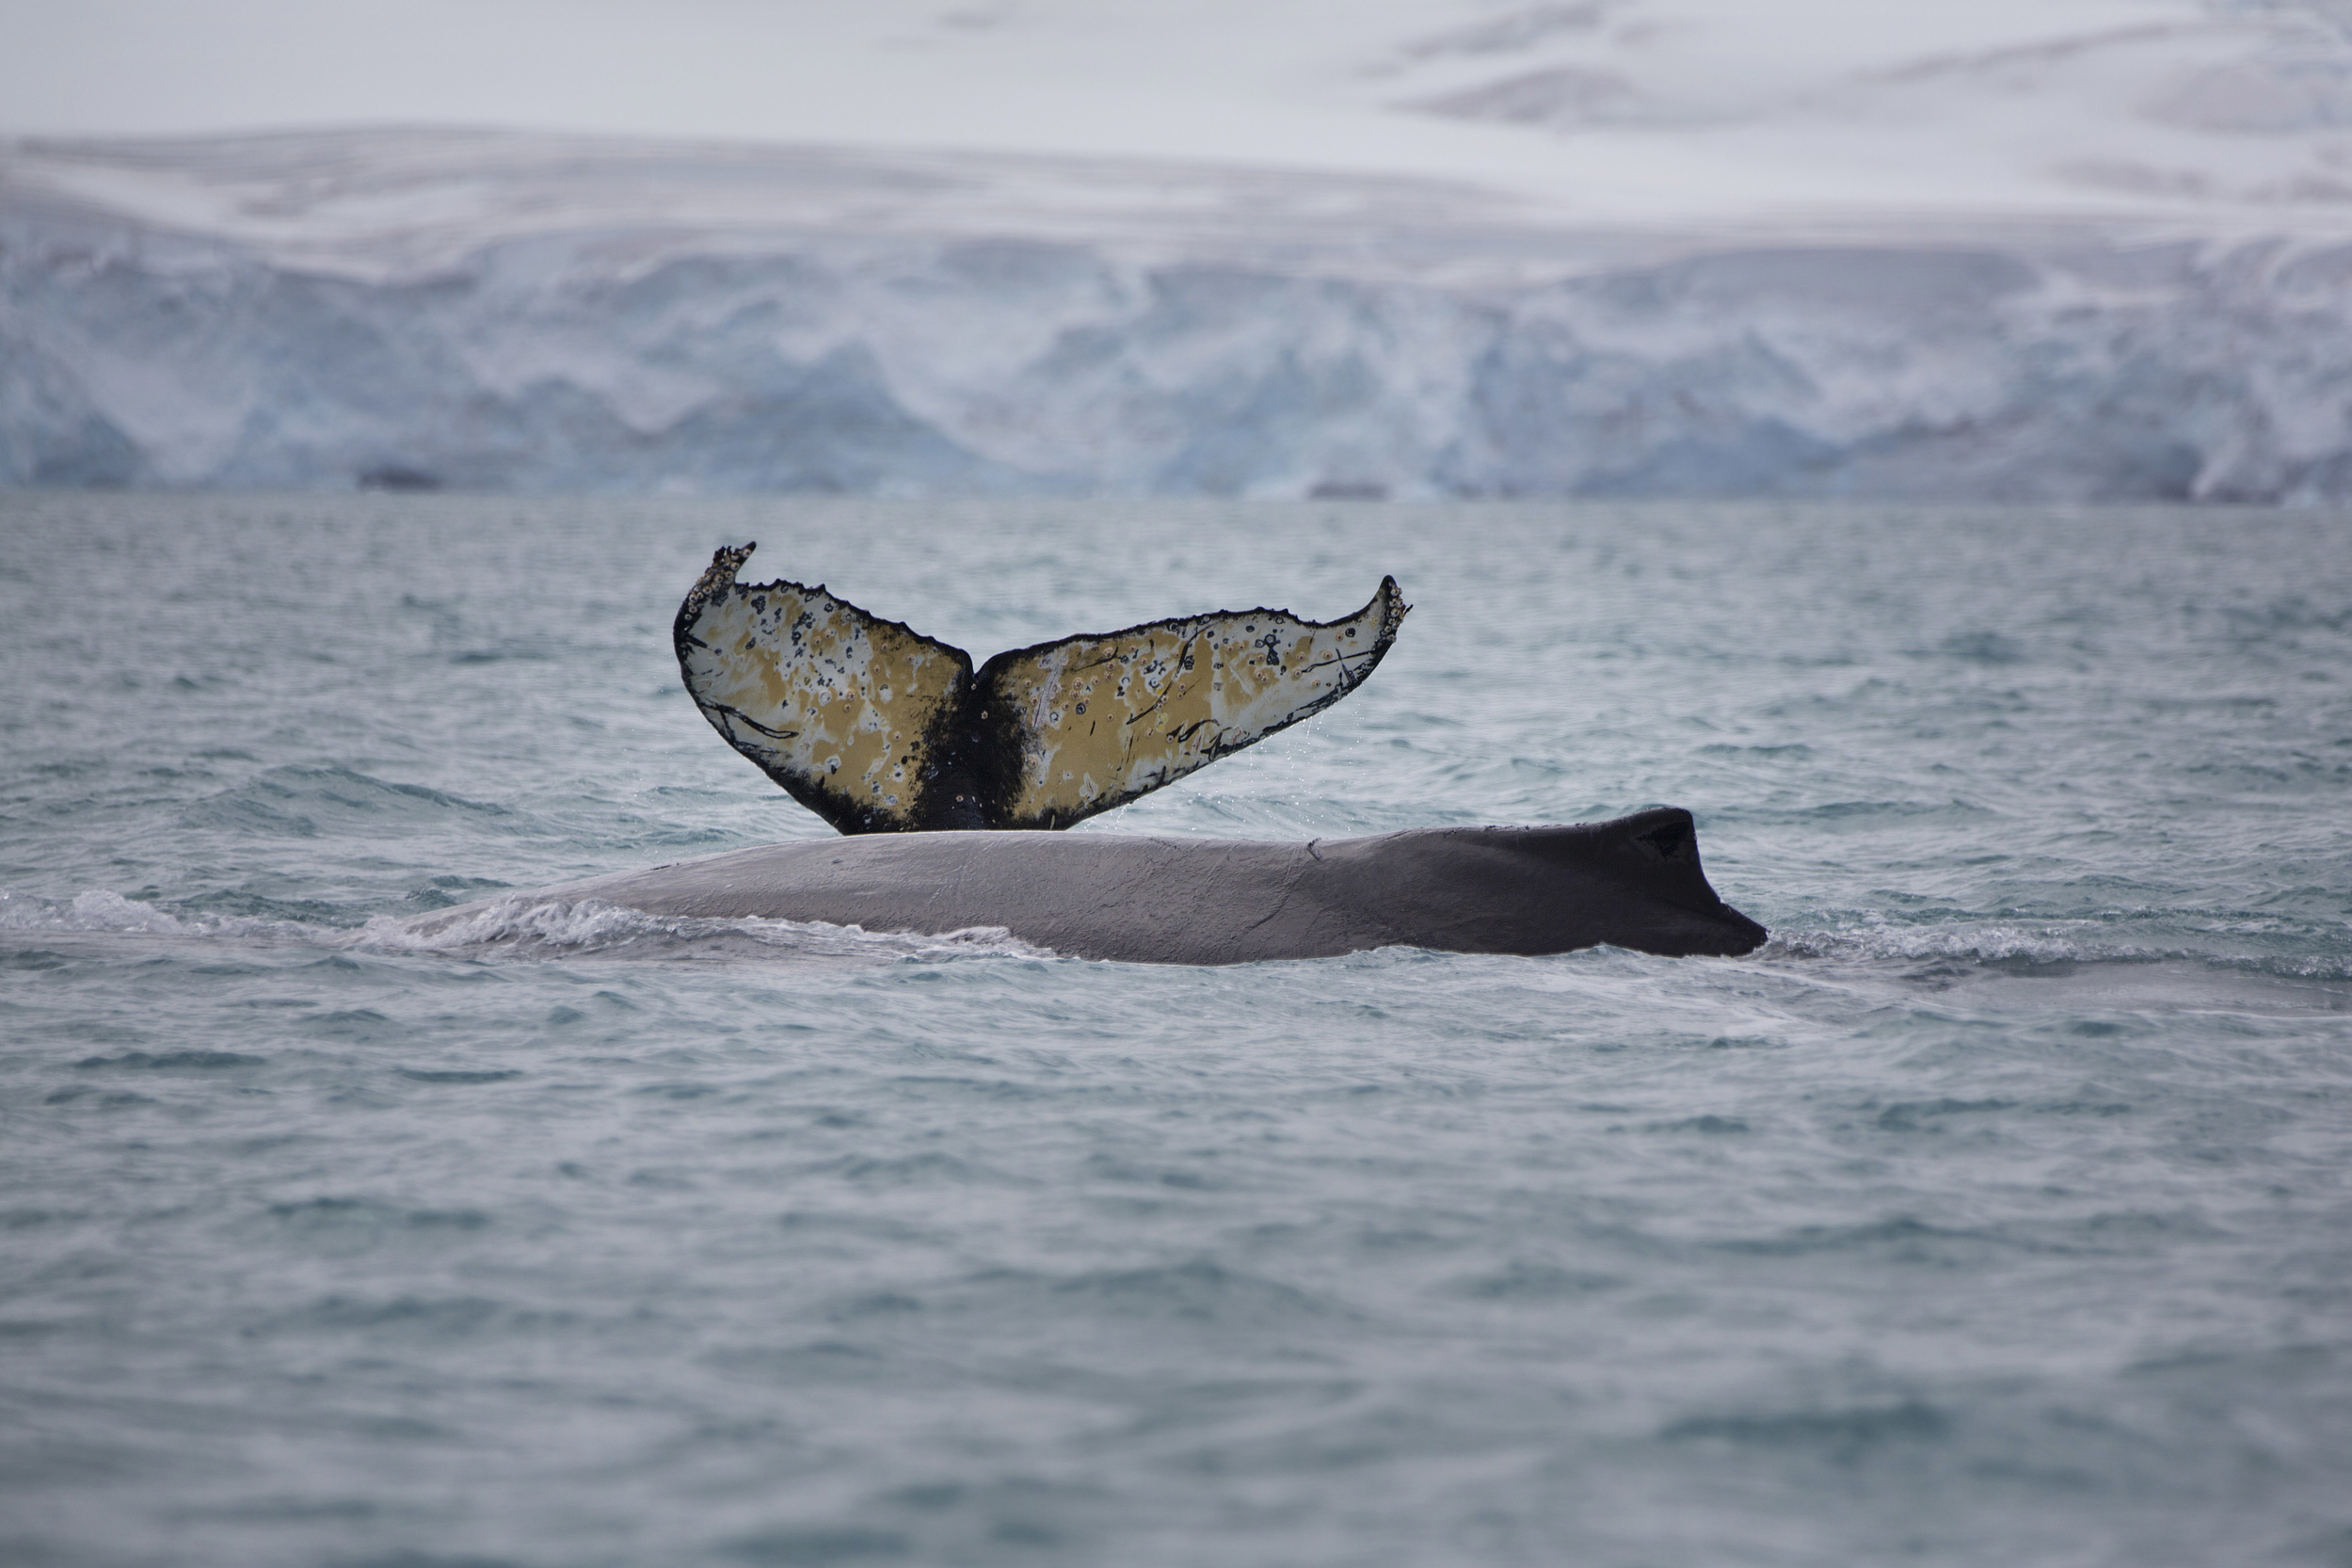 Humpback whales swim in the waters off Half Mood Island, Antarctica.